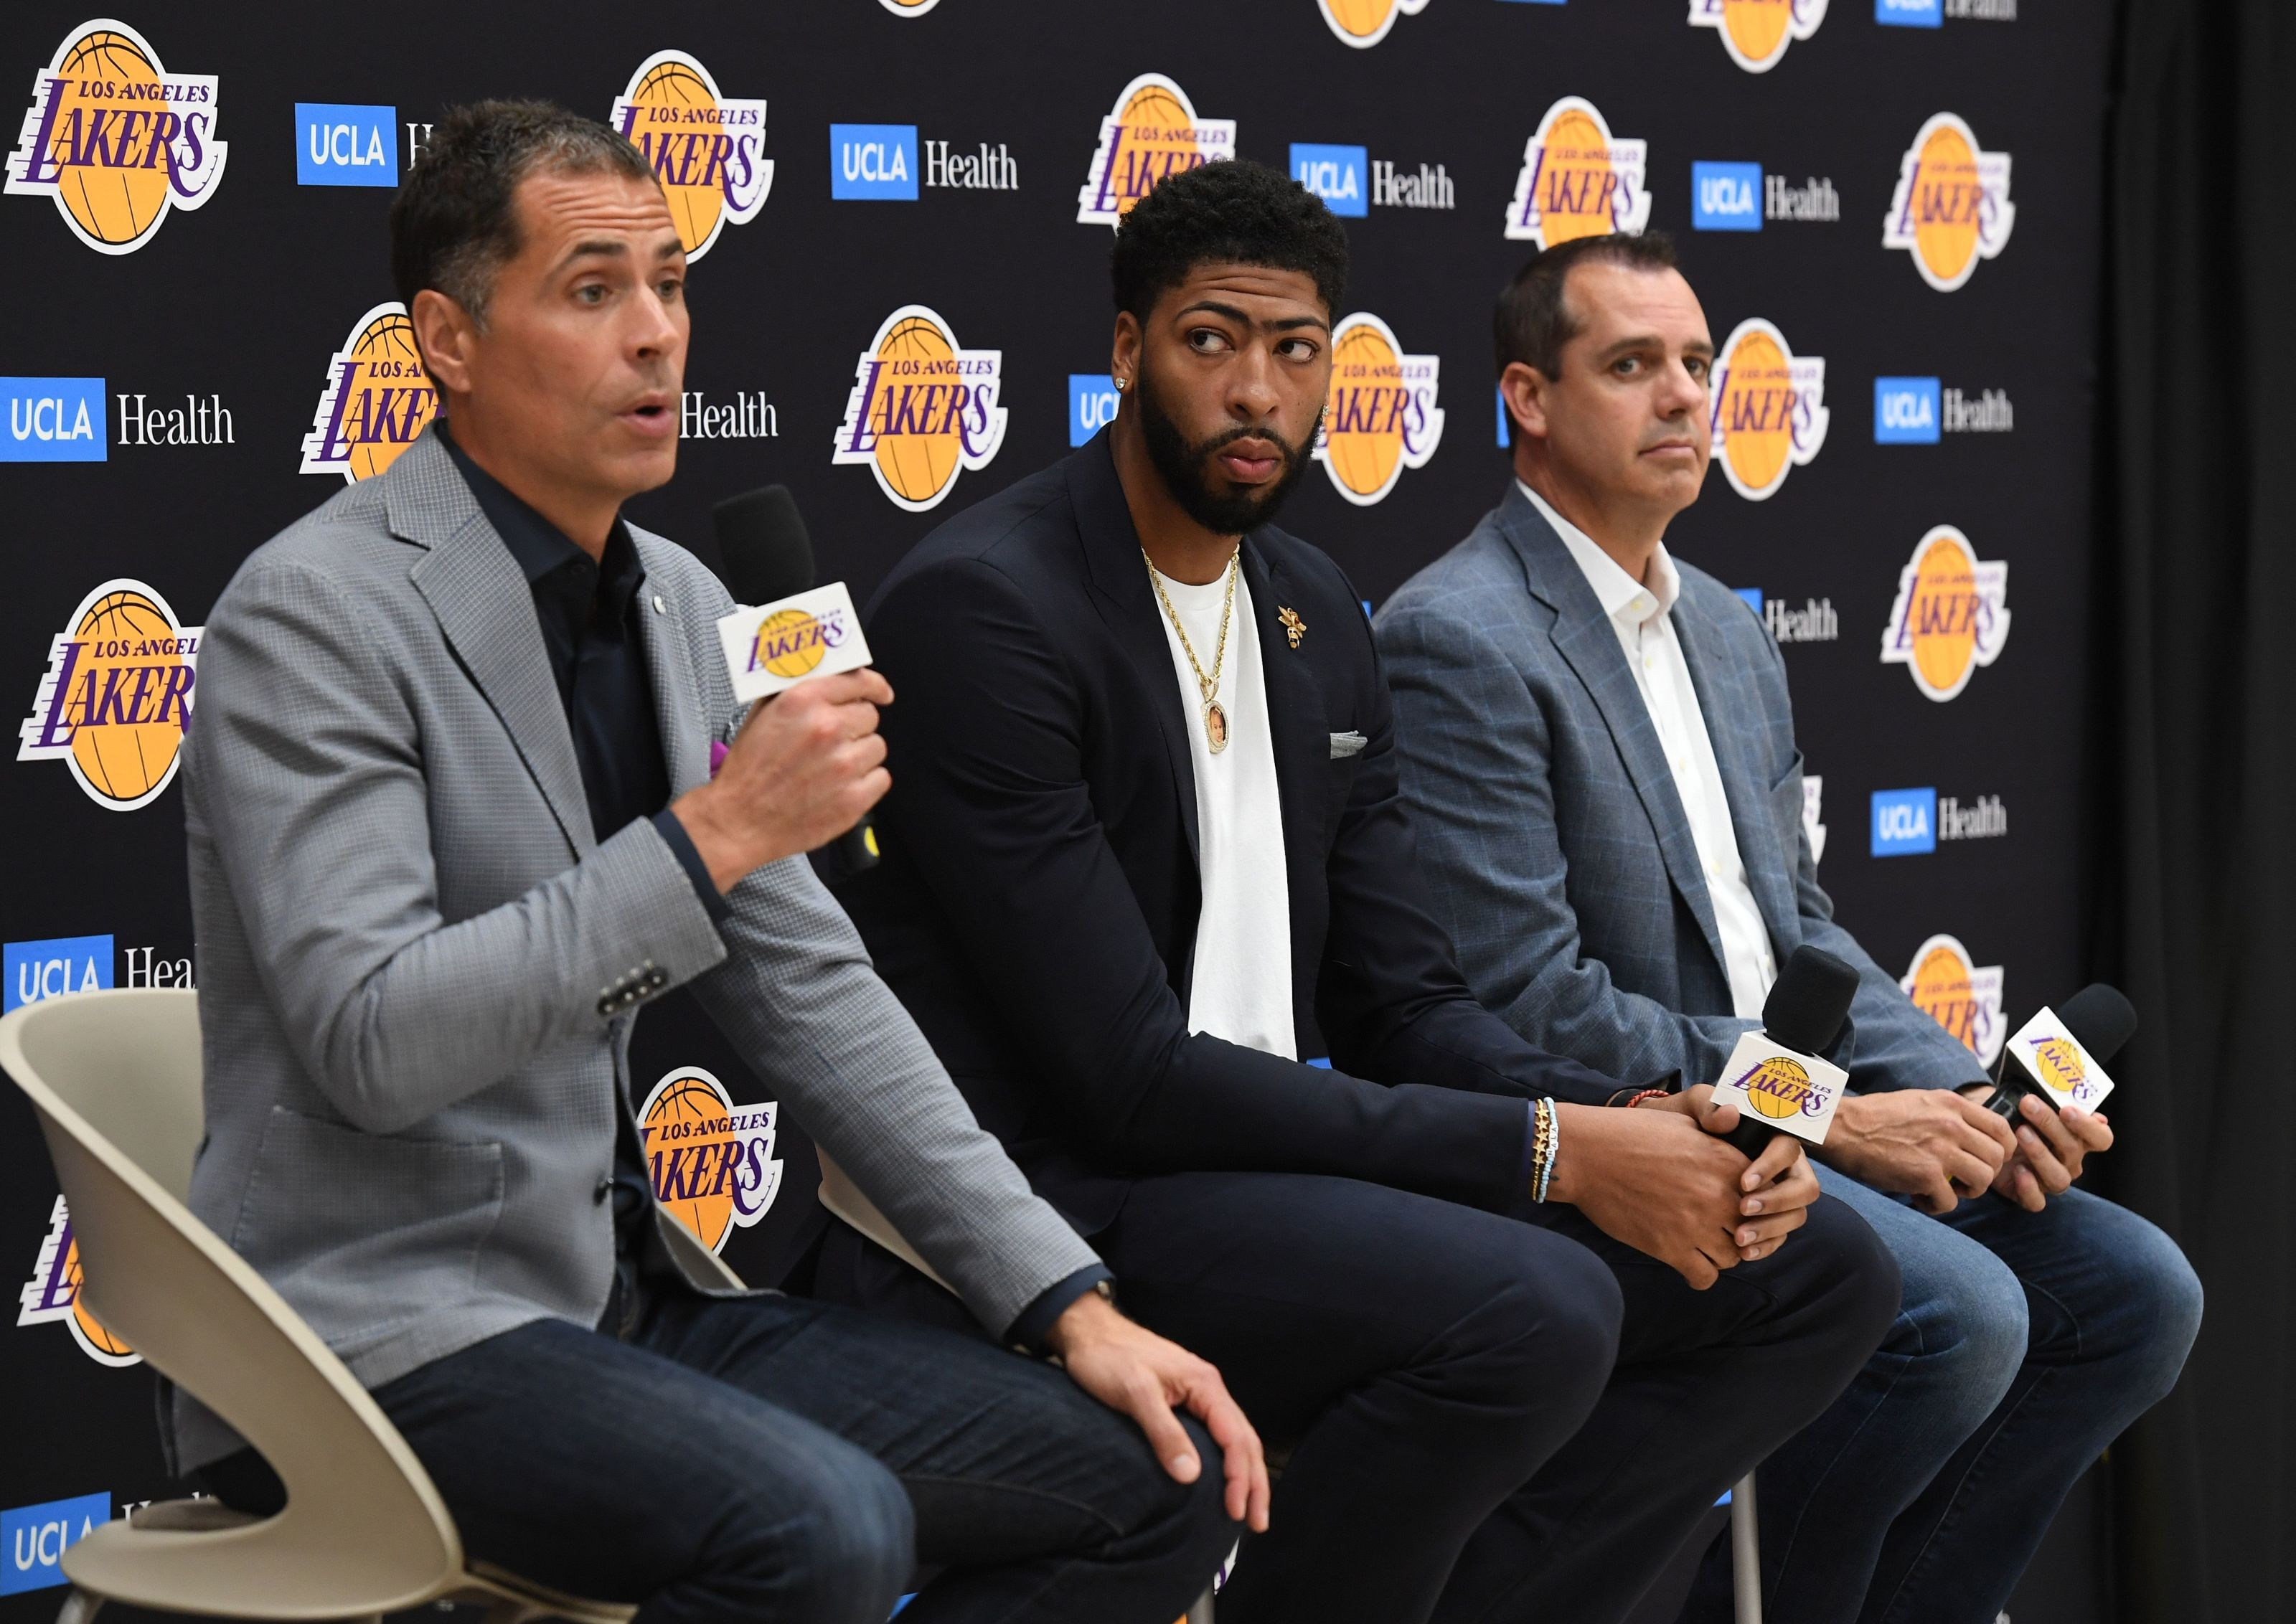 Los Angeles Lakers: Start of 2019-20 sets up for fast start